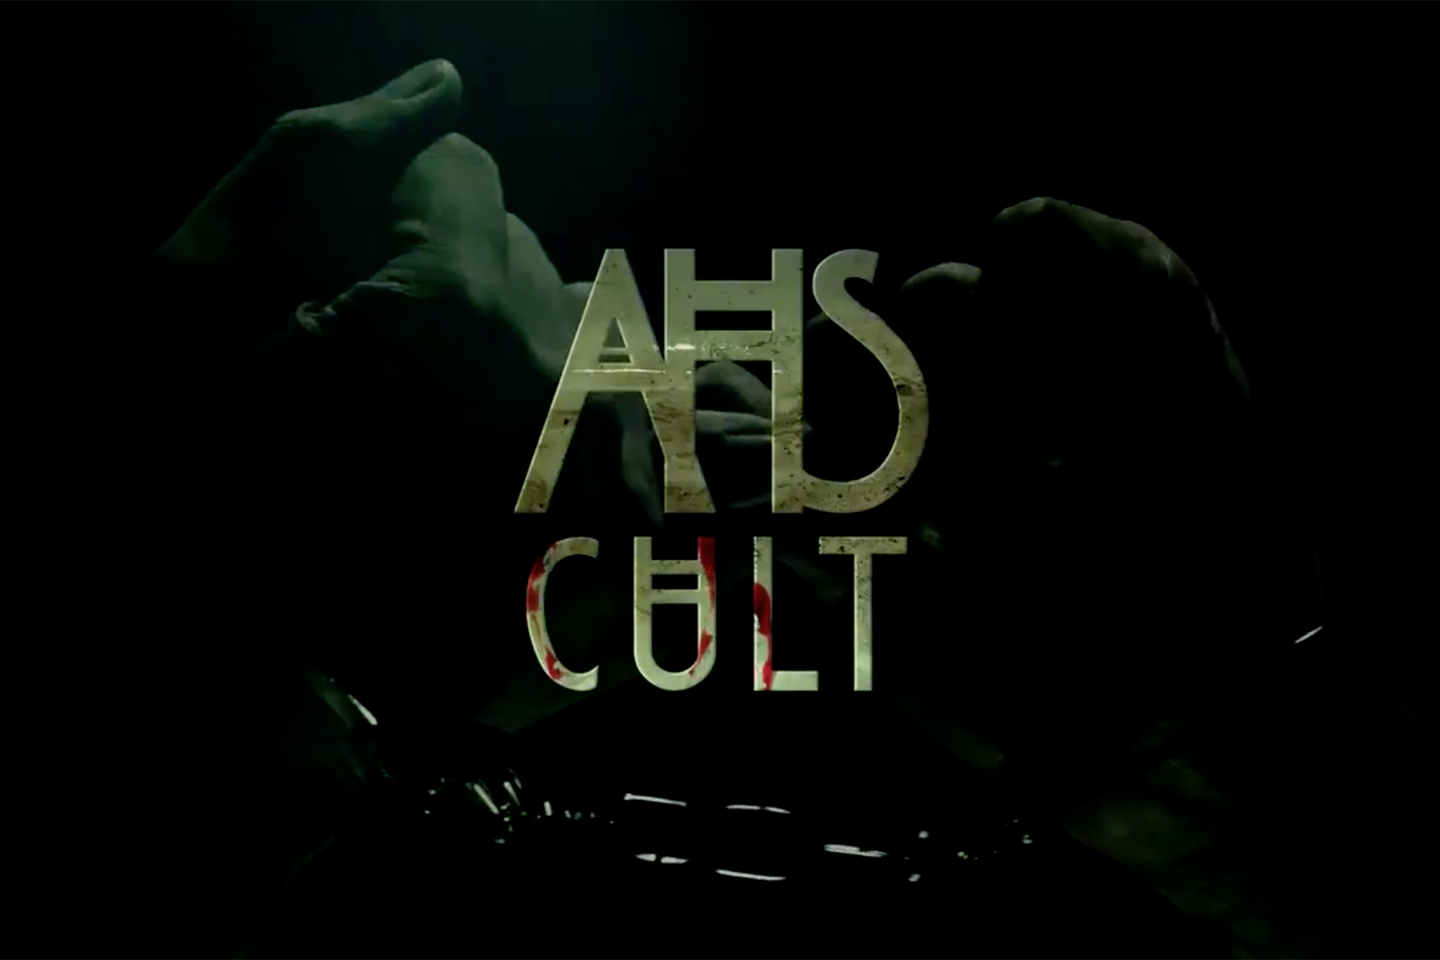 american-horror-story-cult-title-sequence.png